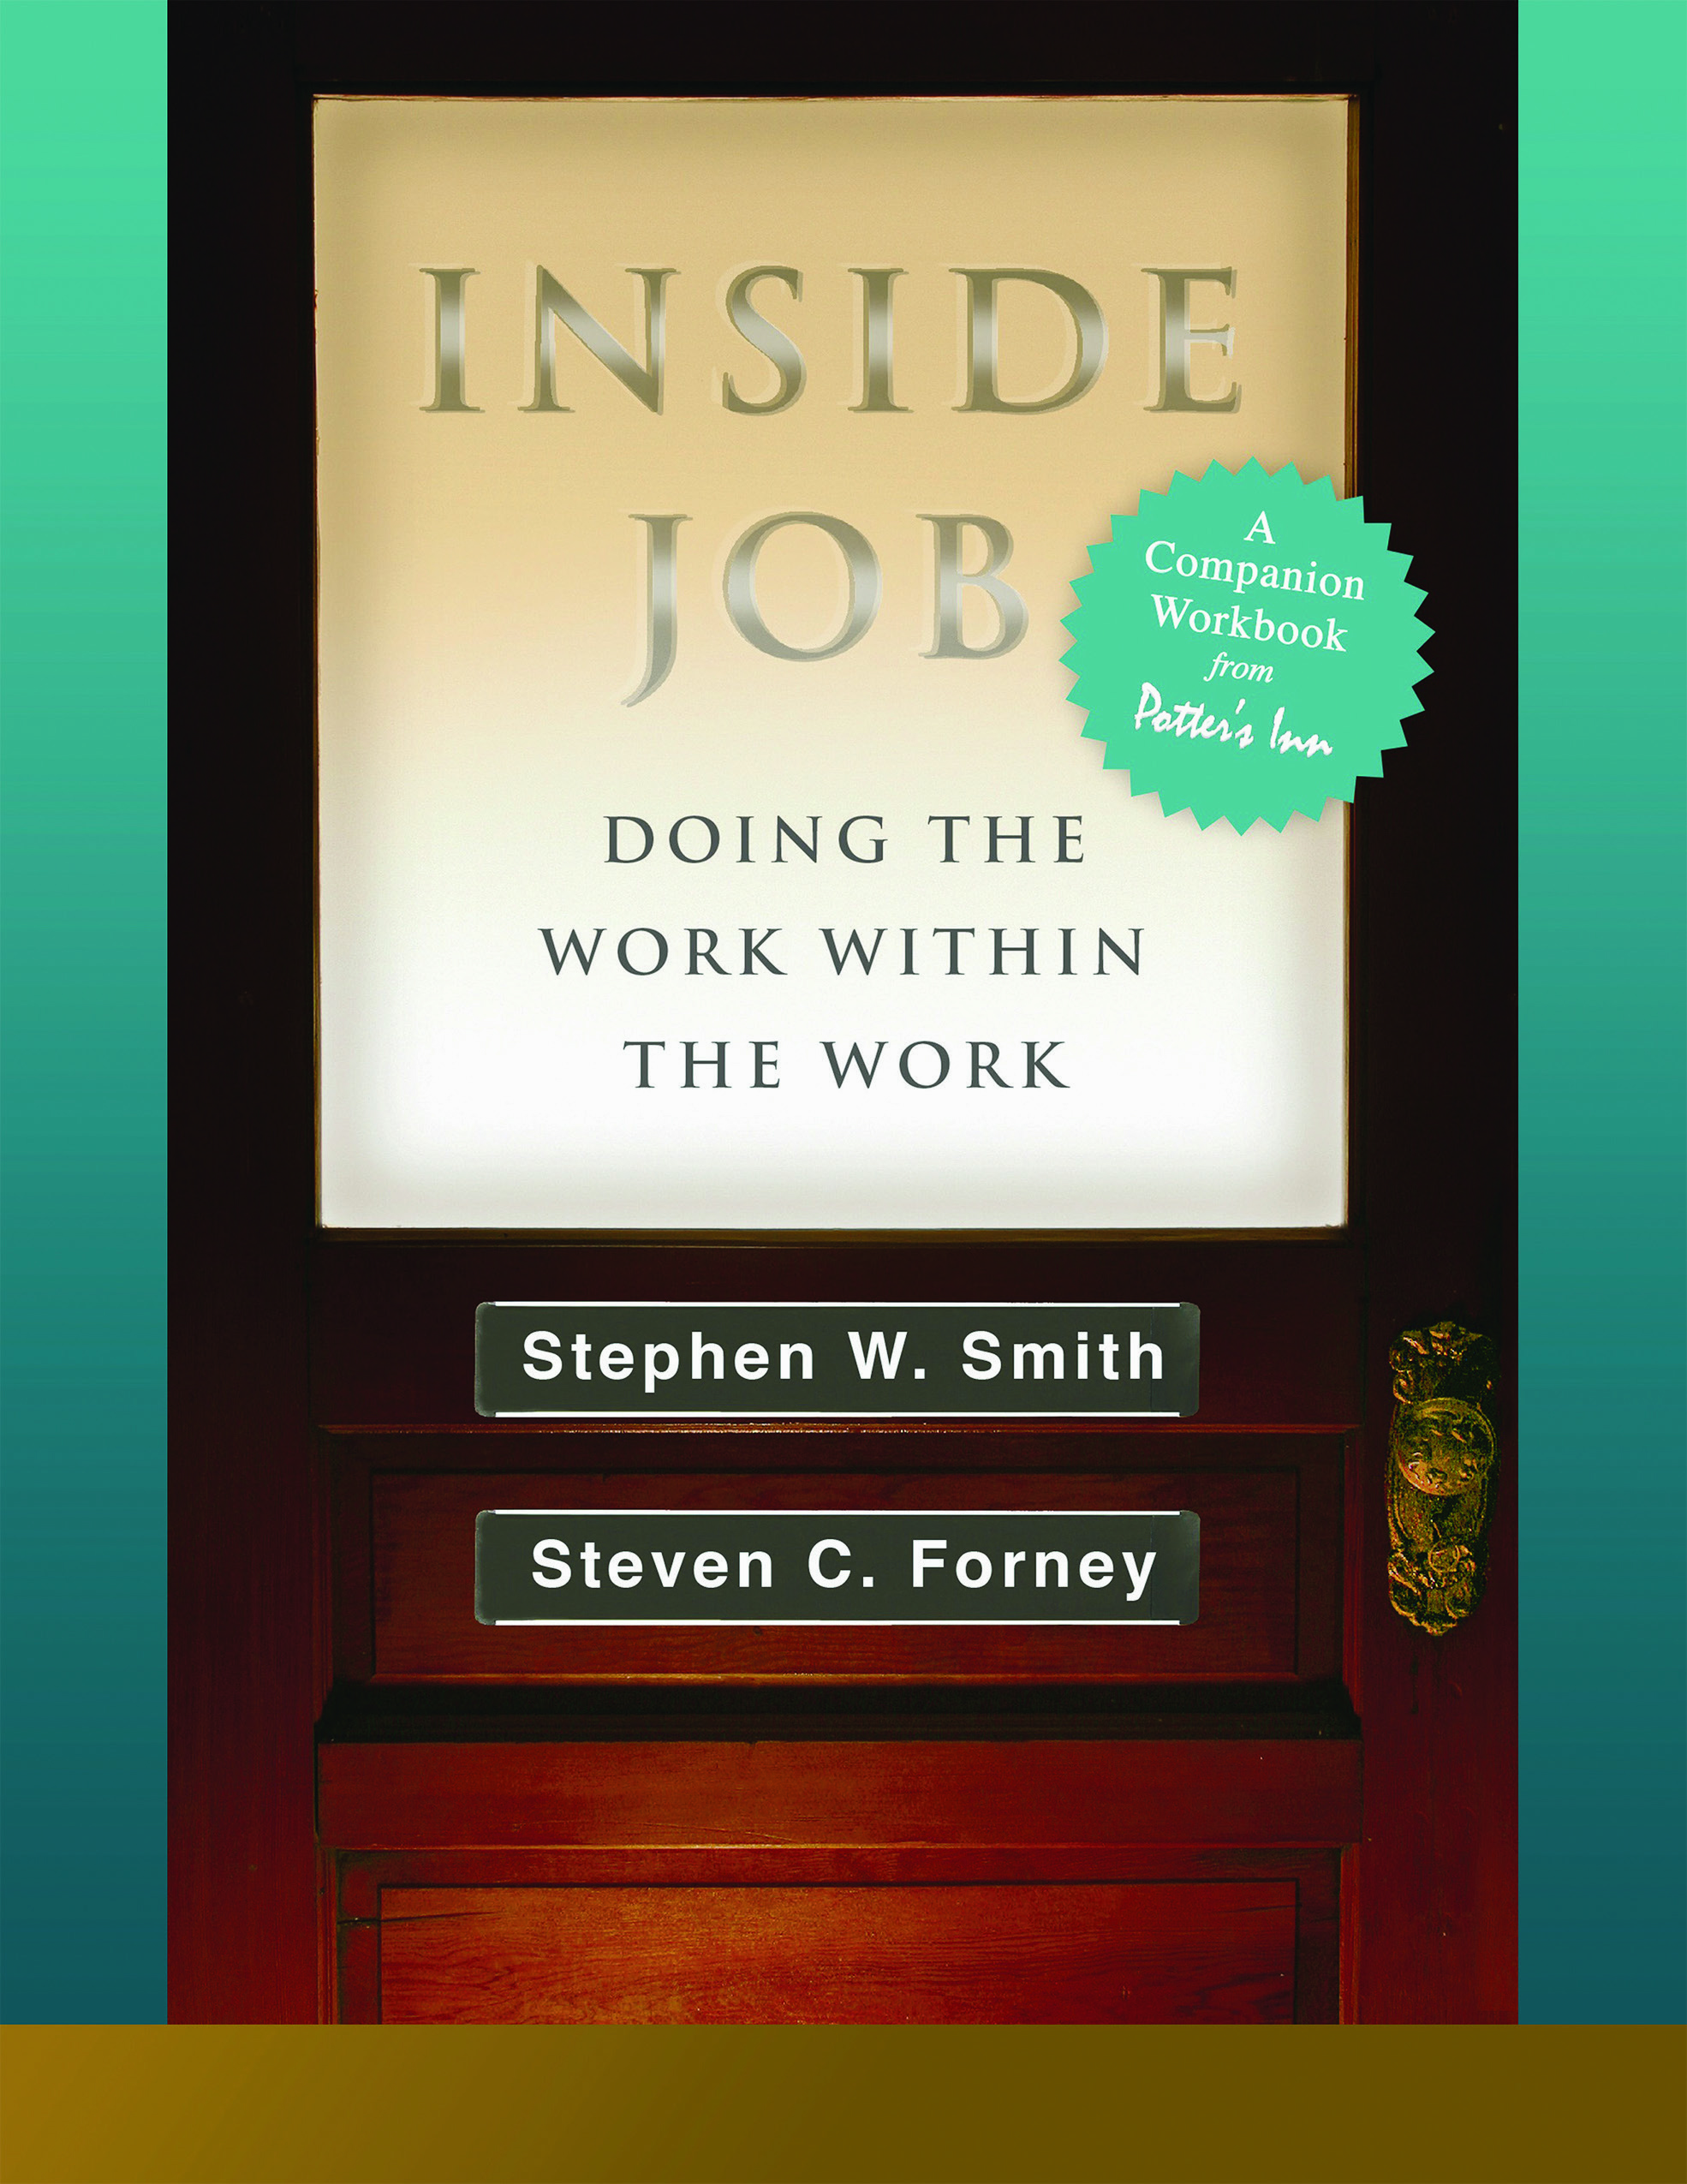 Inside Job: Companion Workbook